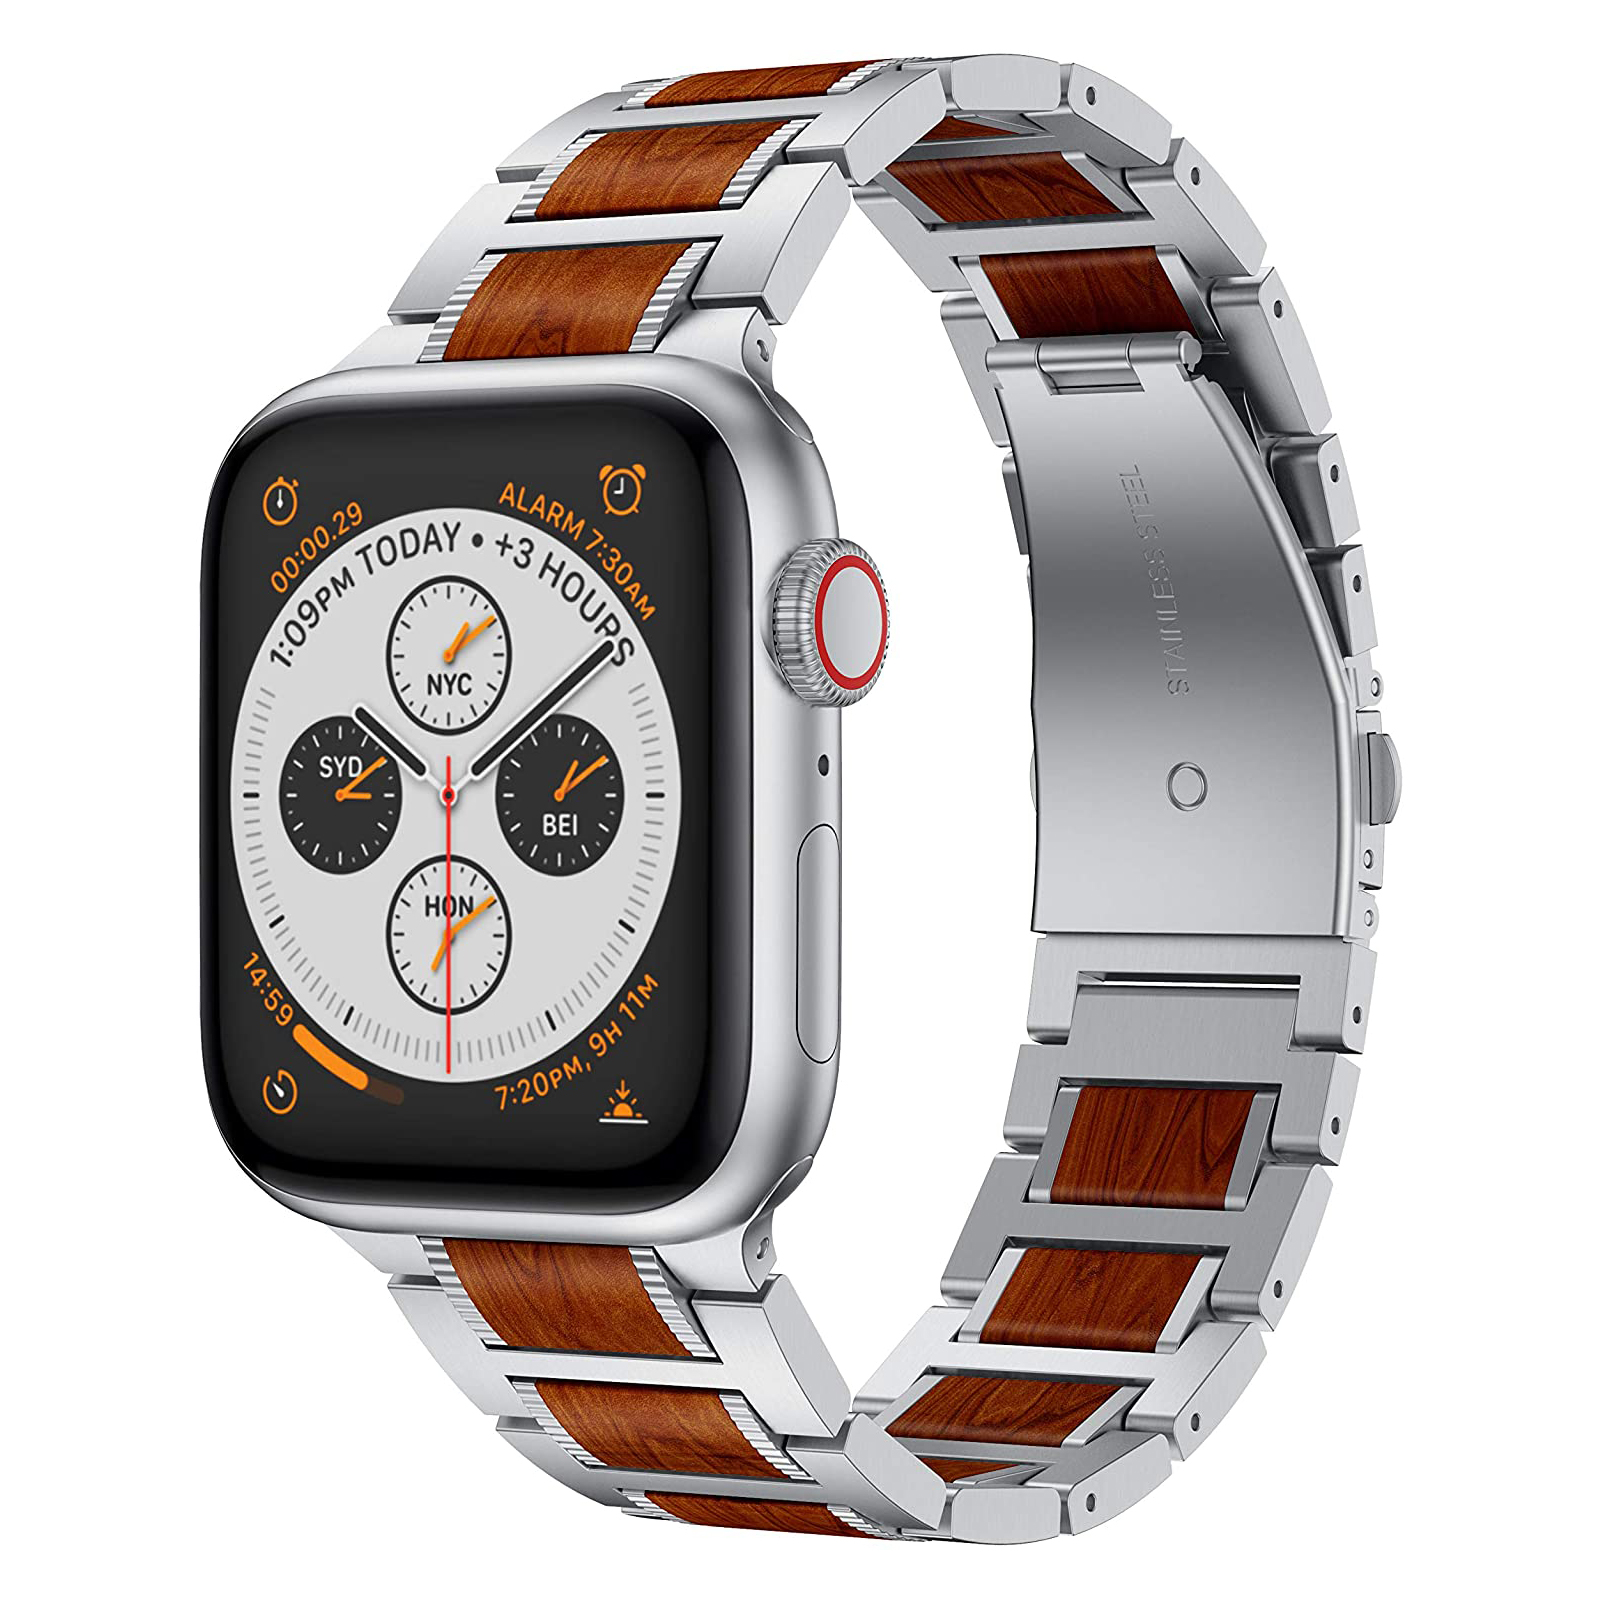 red sandalwood stainless steel metal band for apple watch Ruban apple watch metal bands 4